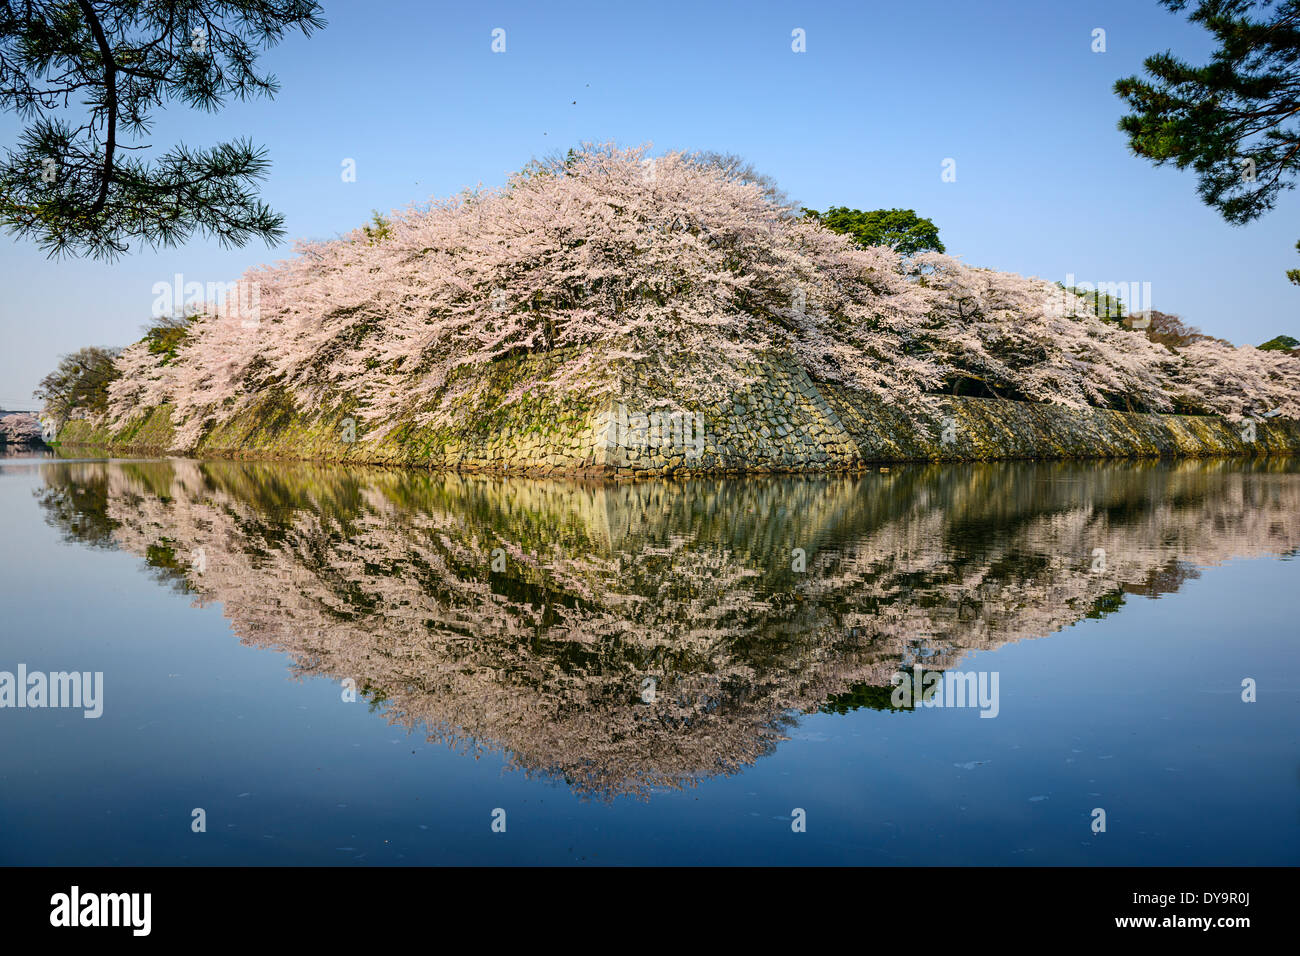 Castle outter moat during the spring season in Hikone, Japan. - Stock Image